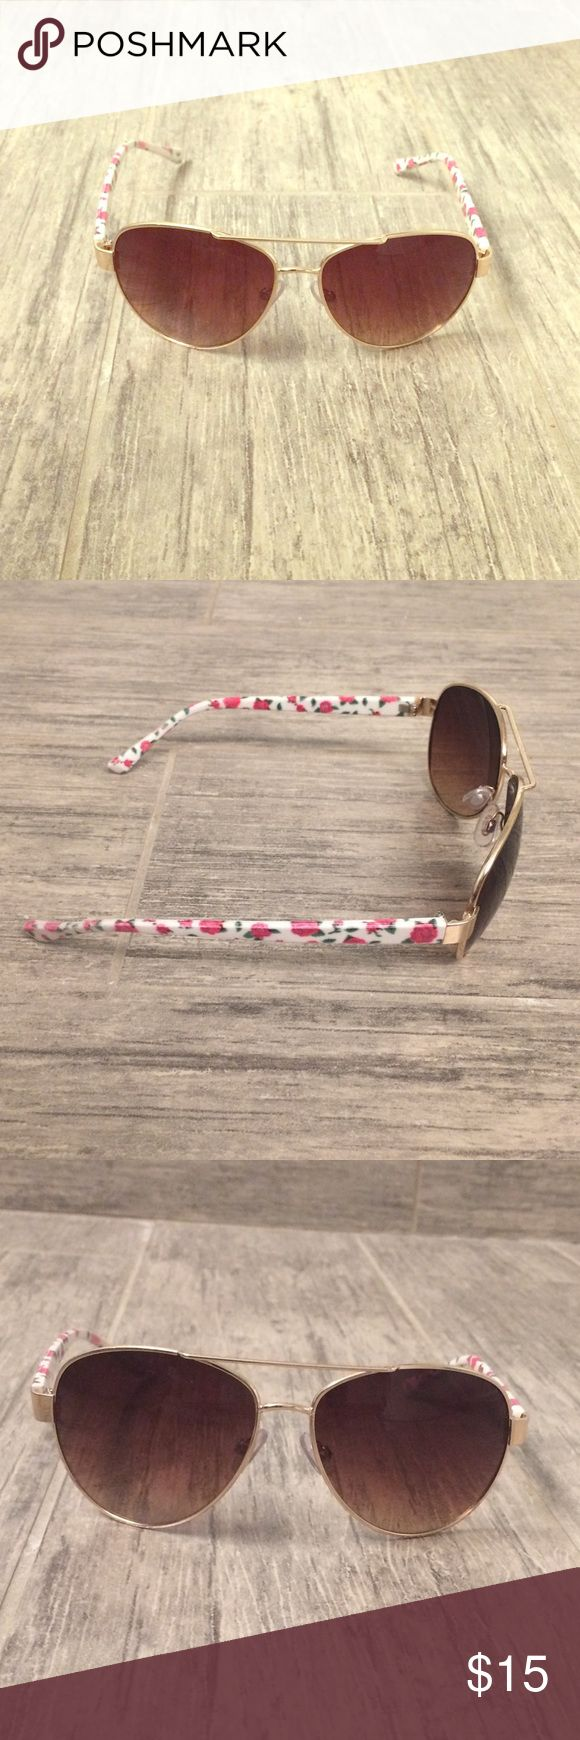 Aviator Sunglasses Very cute gold aviator sunglasses with floral print arms. The lenses are amber. Perfect for summer and in great condition! Accessories Sunglasses